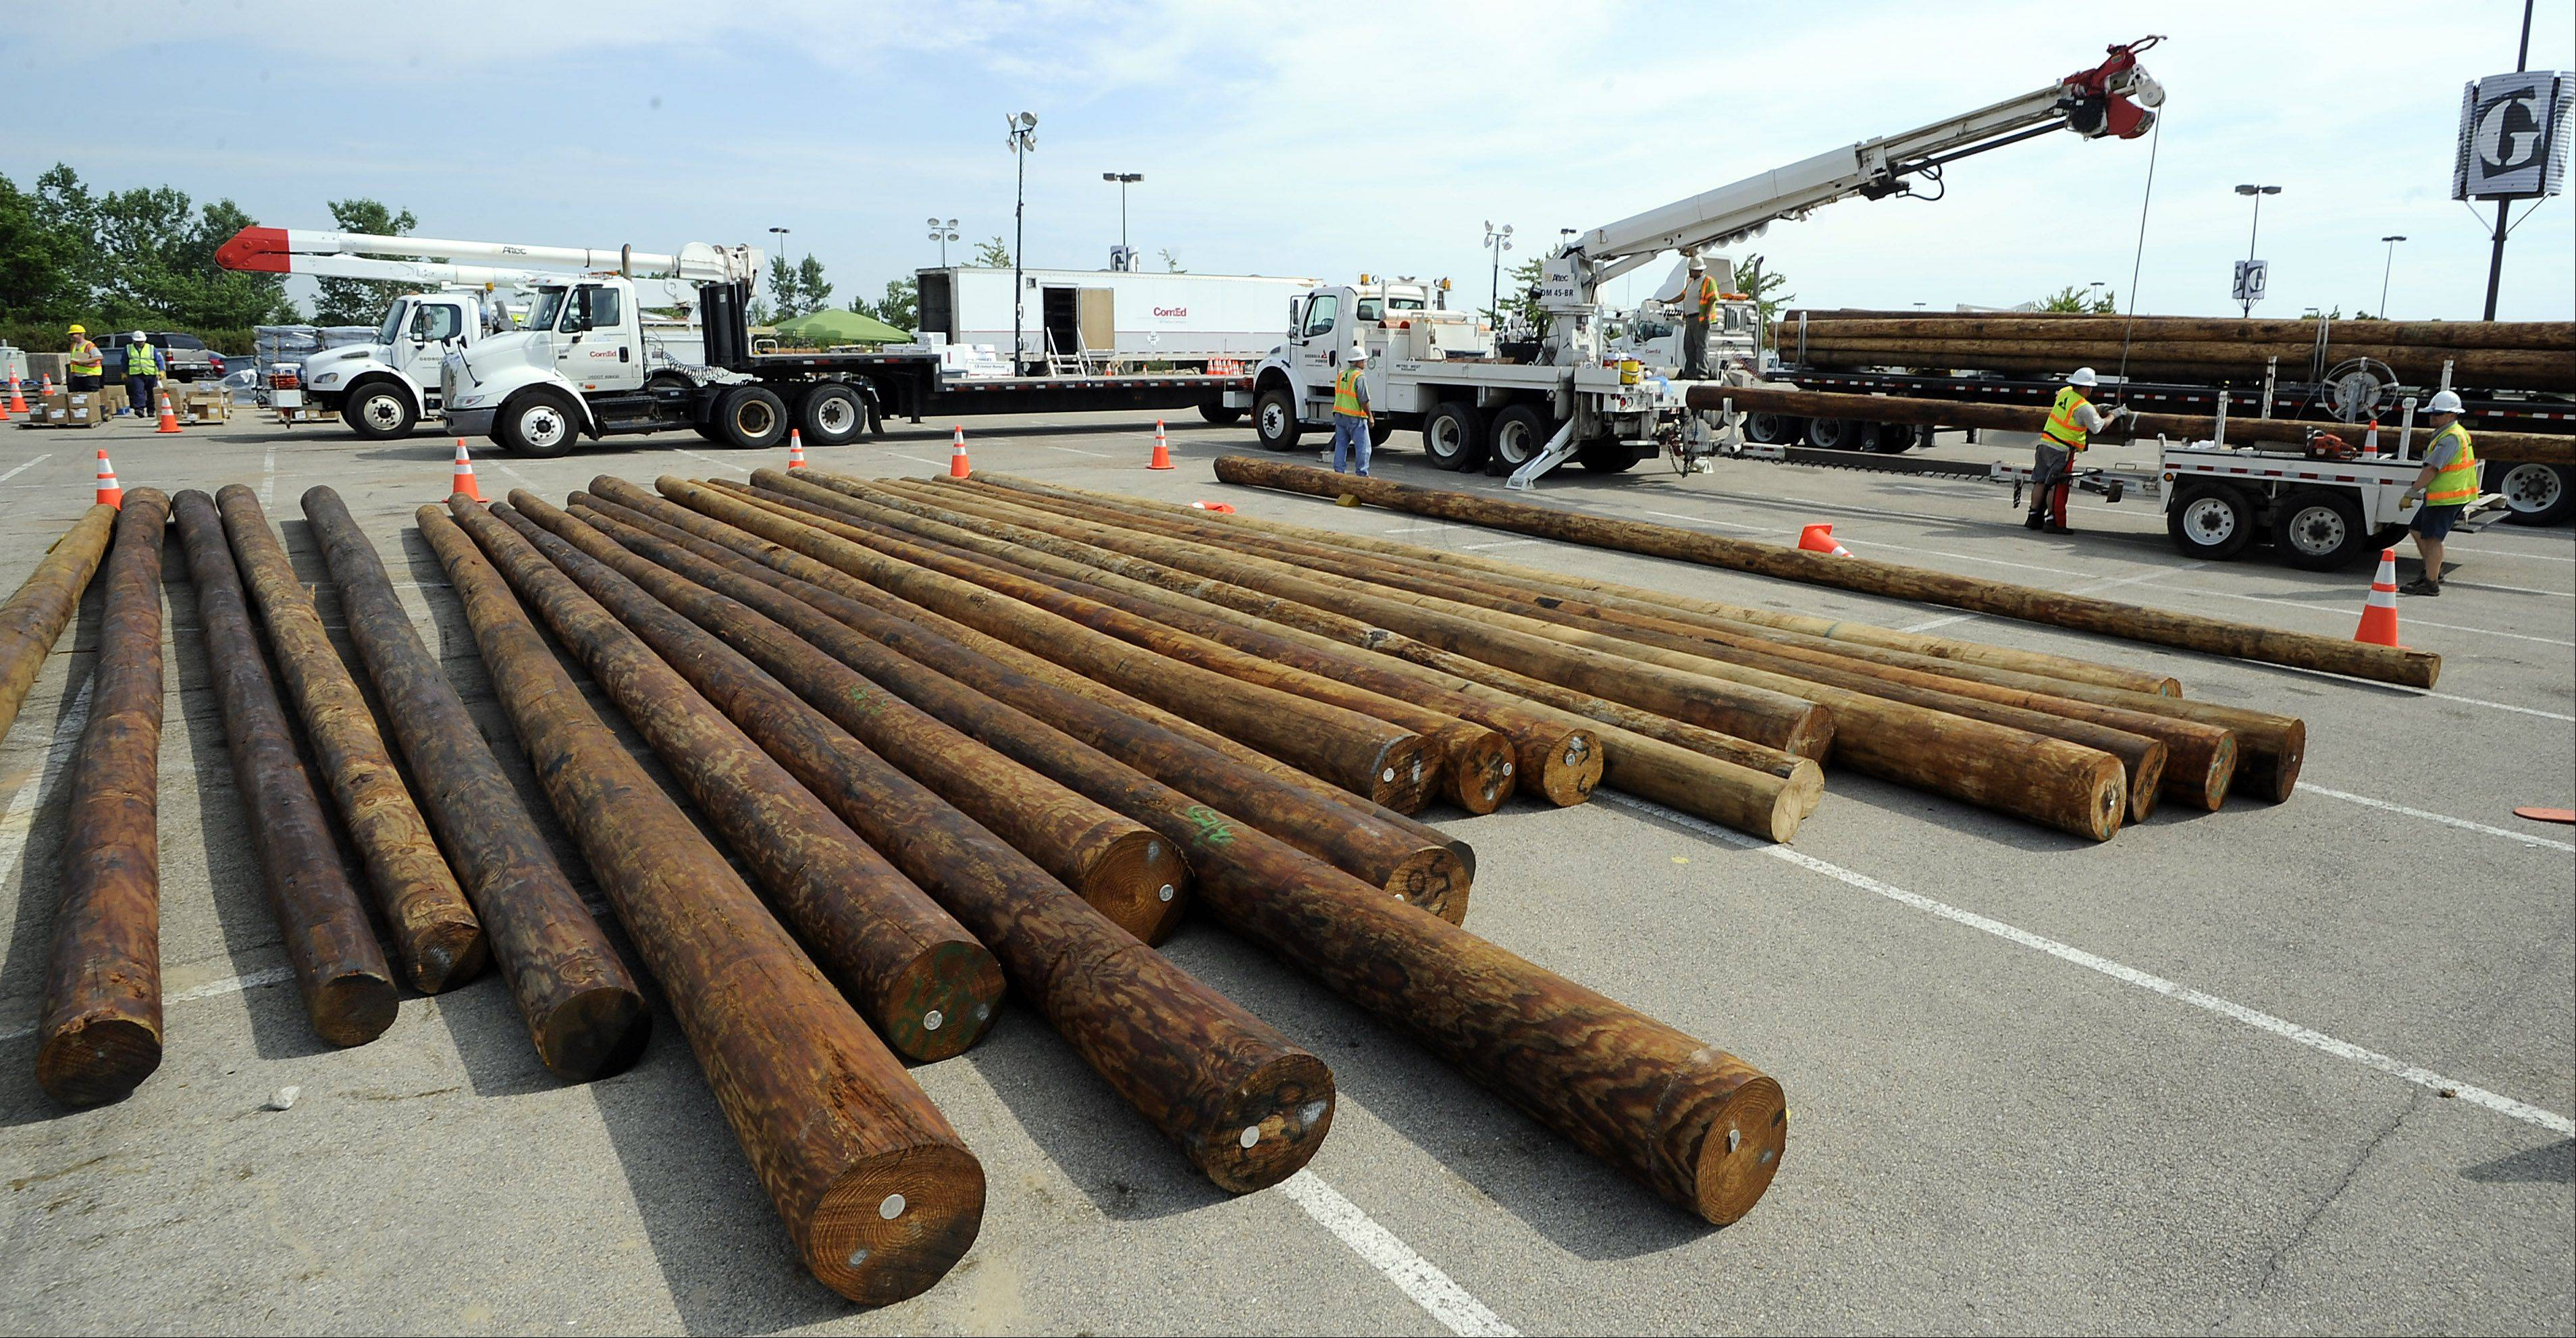 Rows of utility poles lie in the Gurnee Mills parking lot as workers cut them to size to replace the broken ones destroyed in the storm.